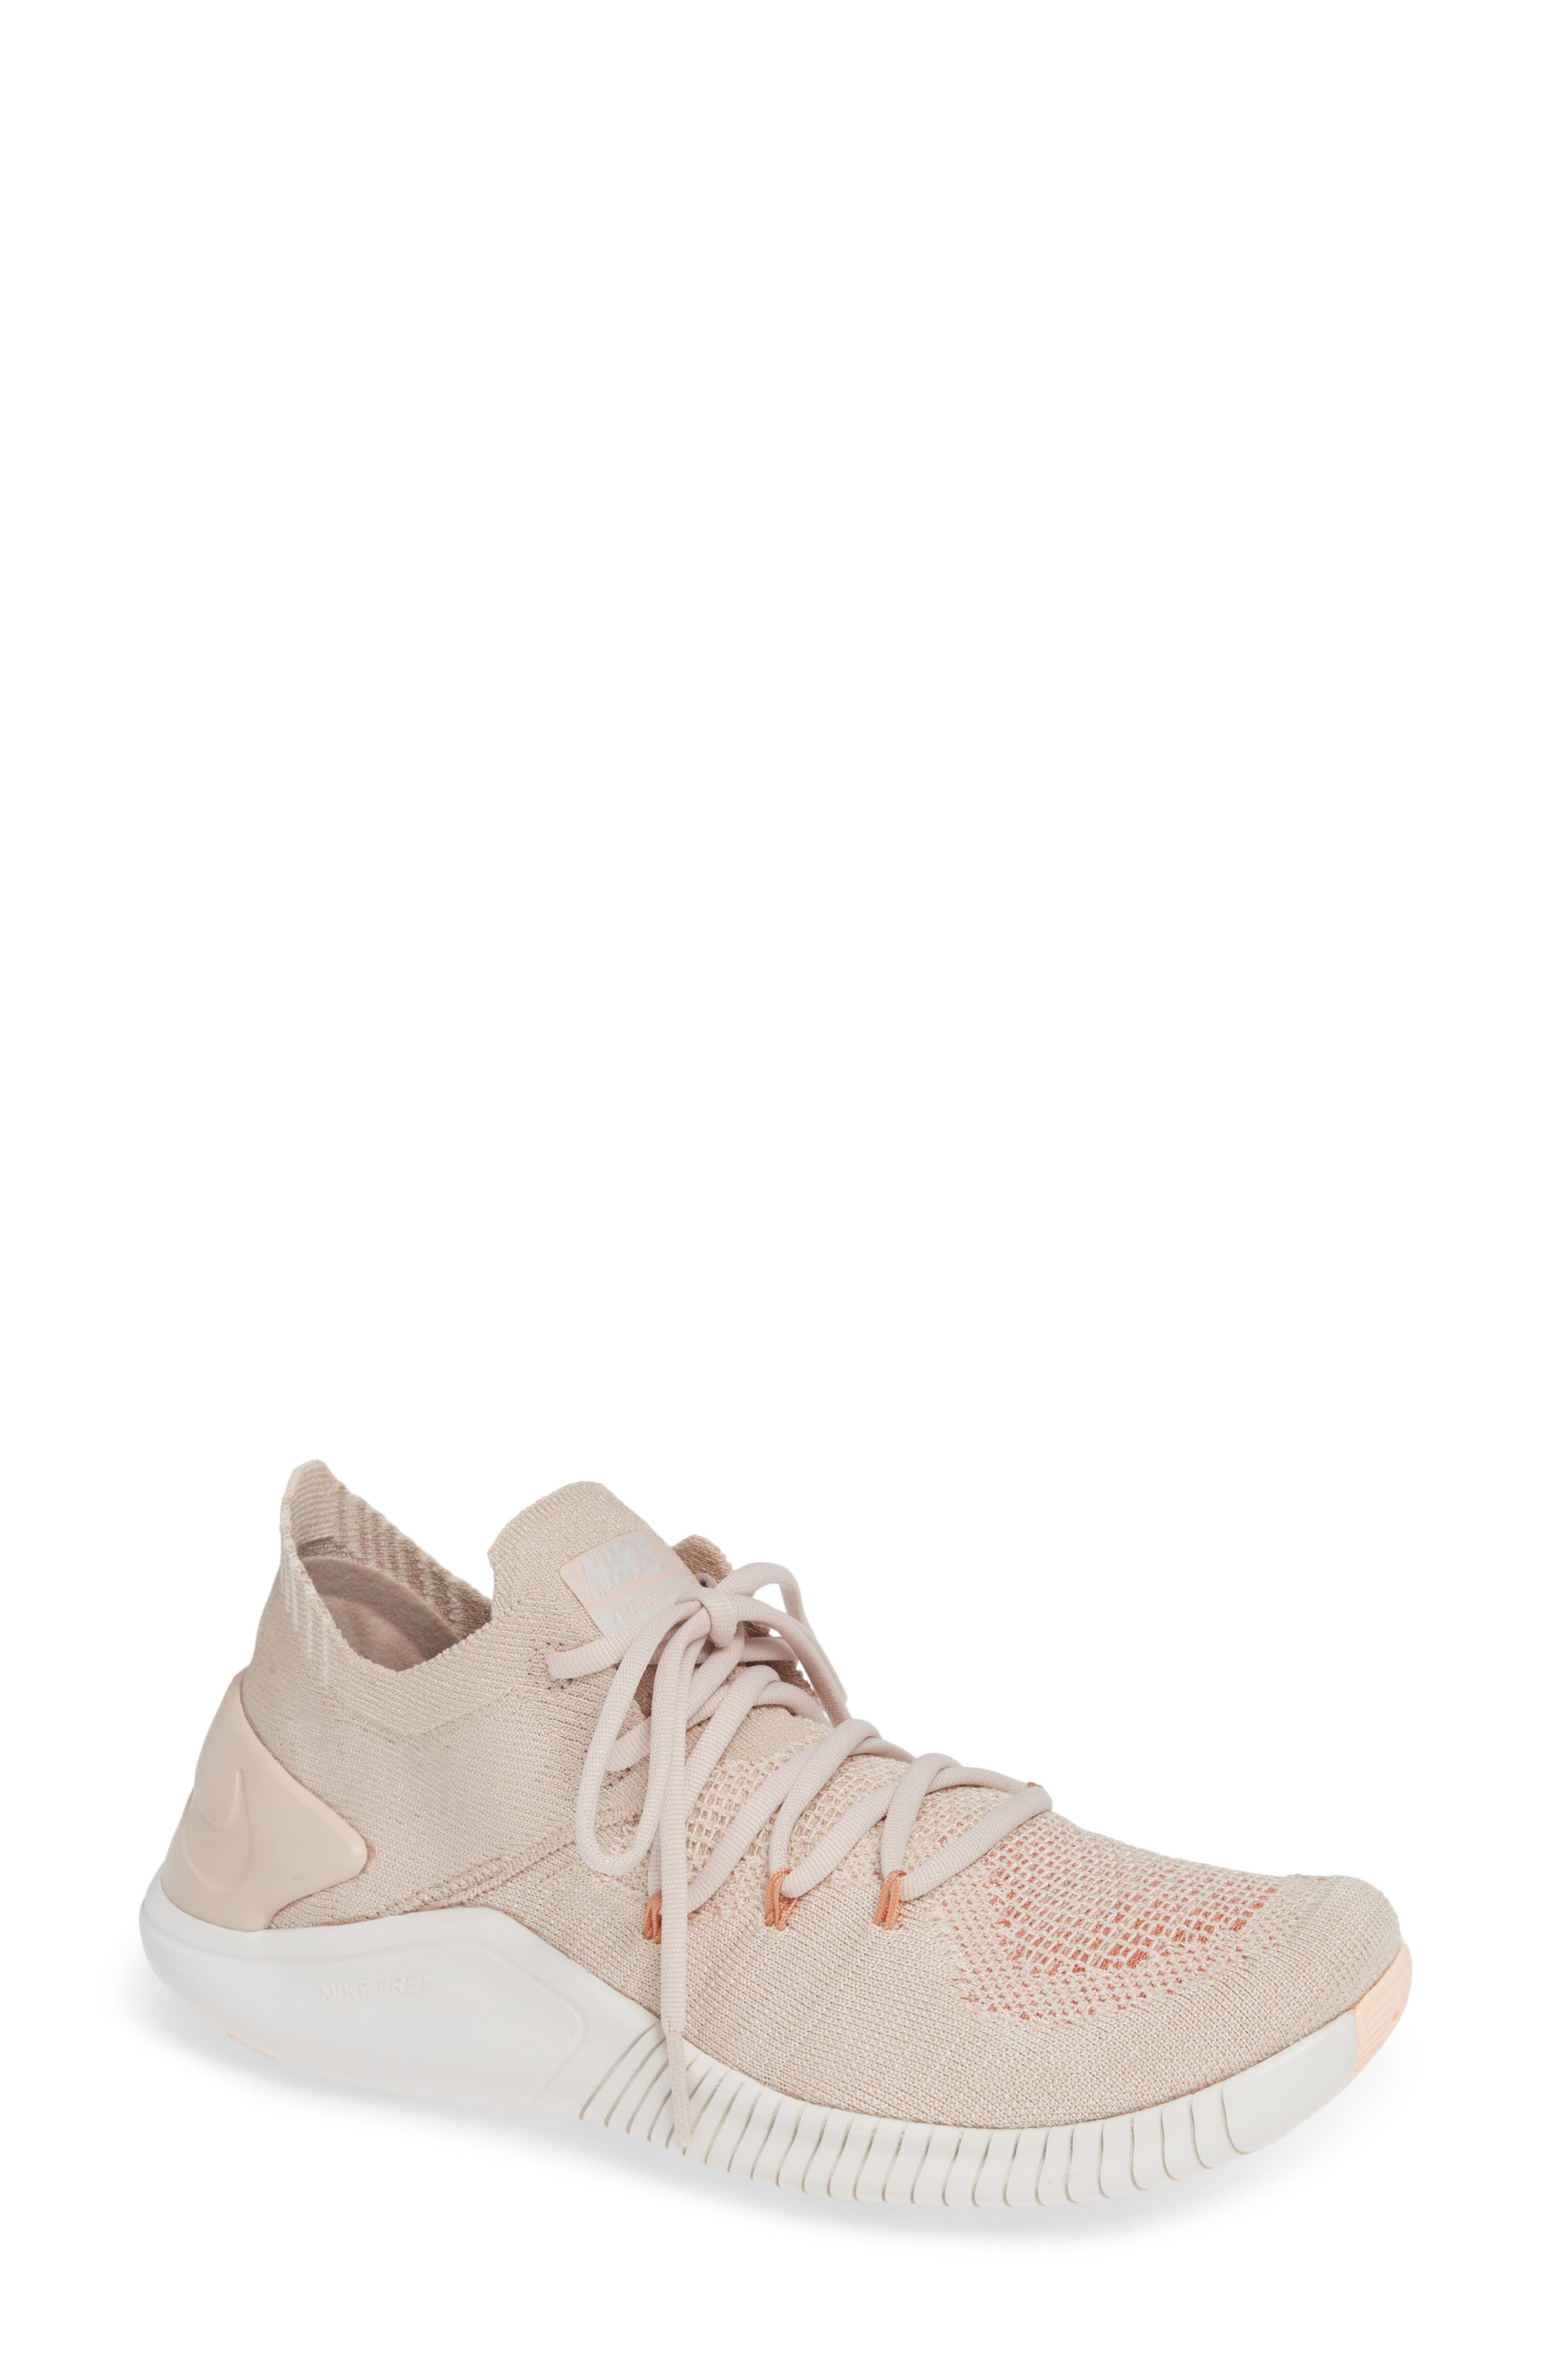 Free TR Flyknit 3 Training Shoe,                             Main thumbnail 1, color,                             Particle Beige/ Phantom